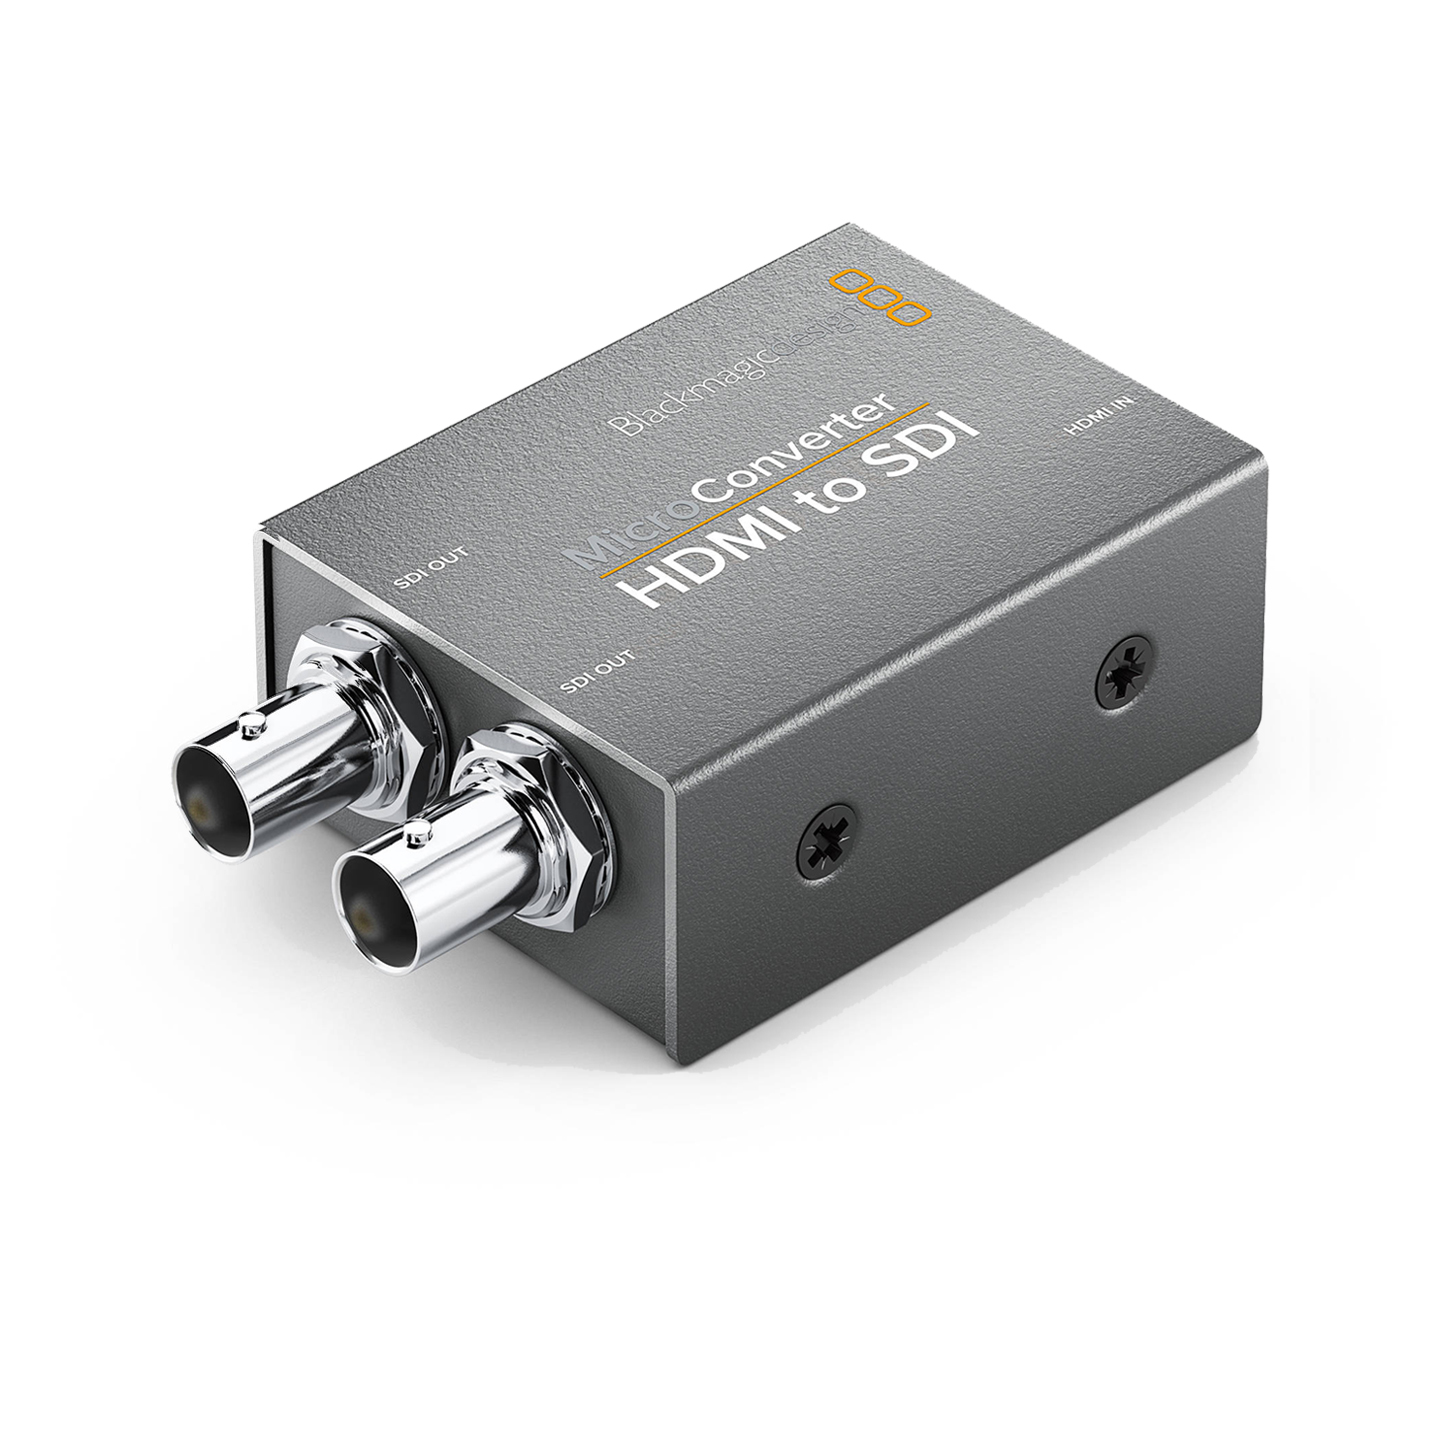 Blackmagic Design Micro Converter HDMI to SDI - Main